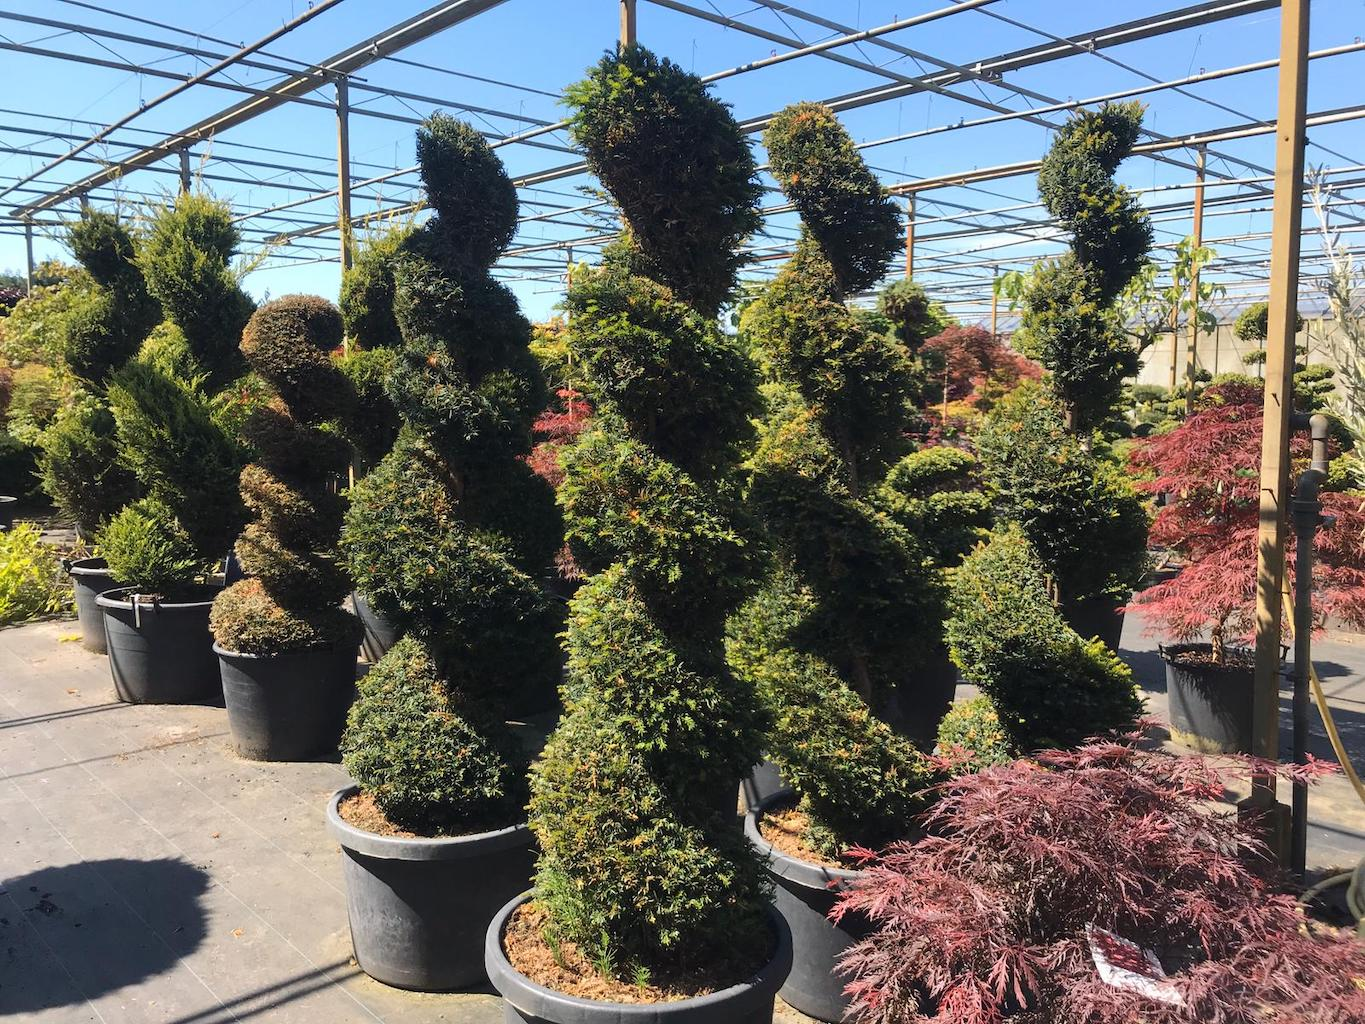 Taxus baccata topiary spirals 175-200cm (2)